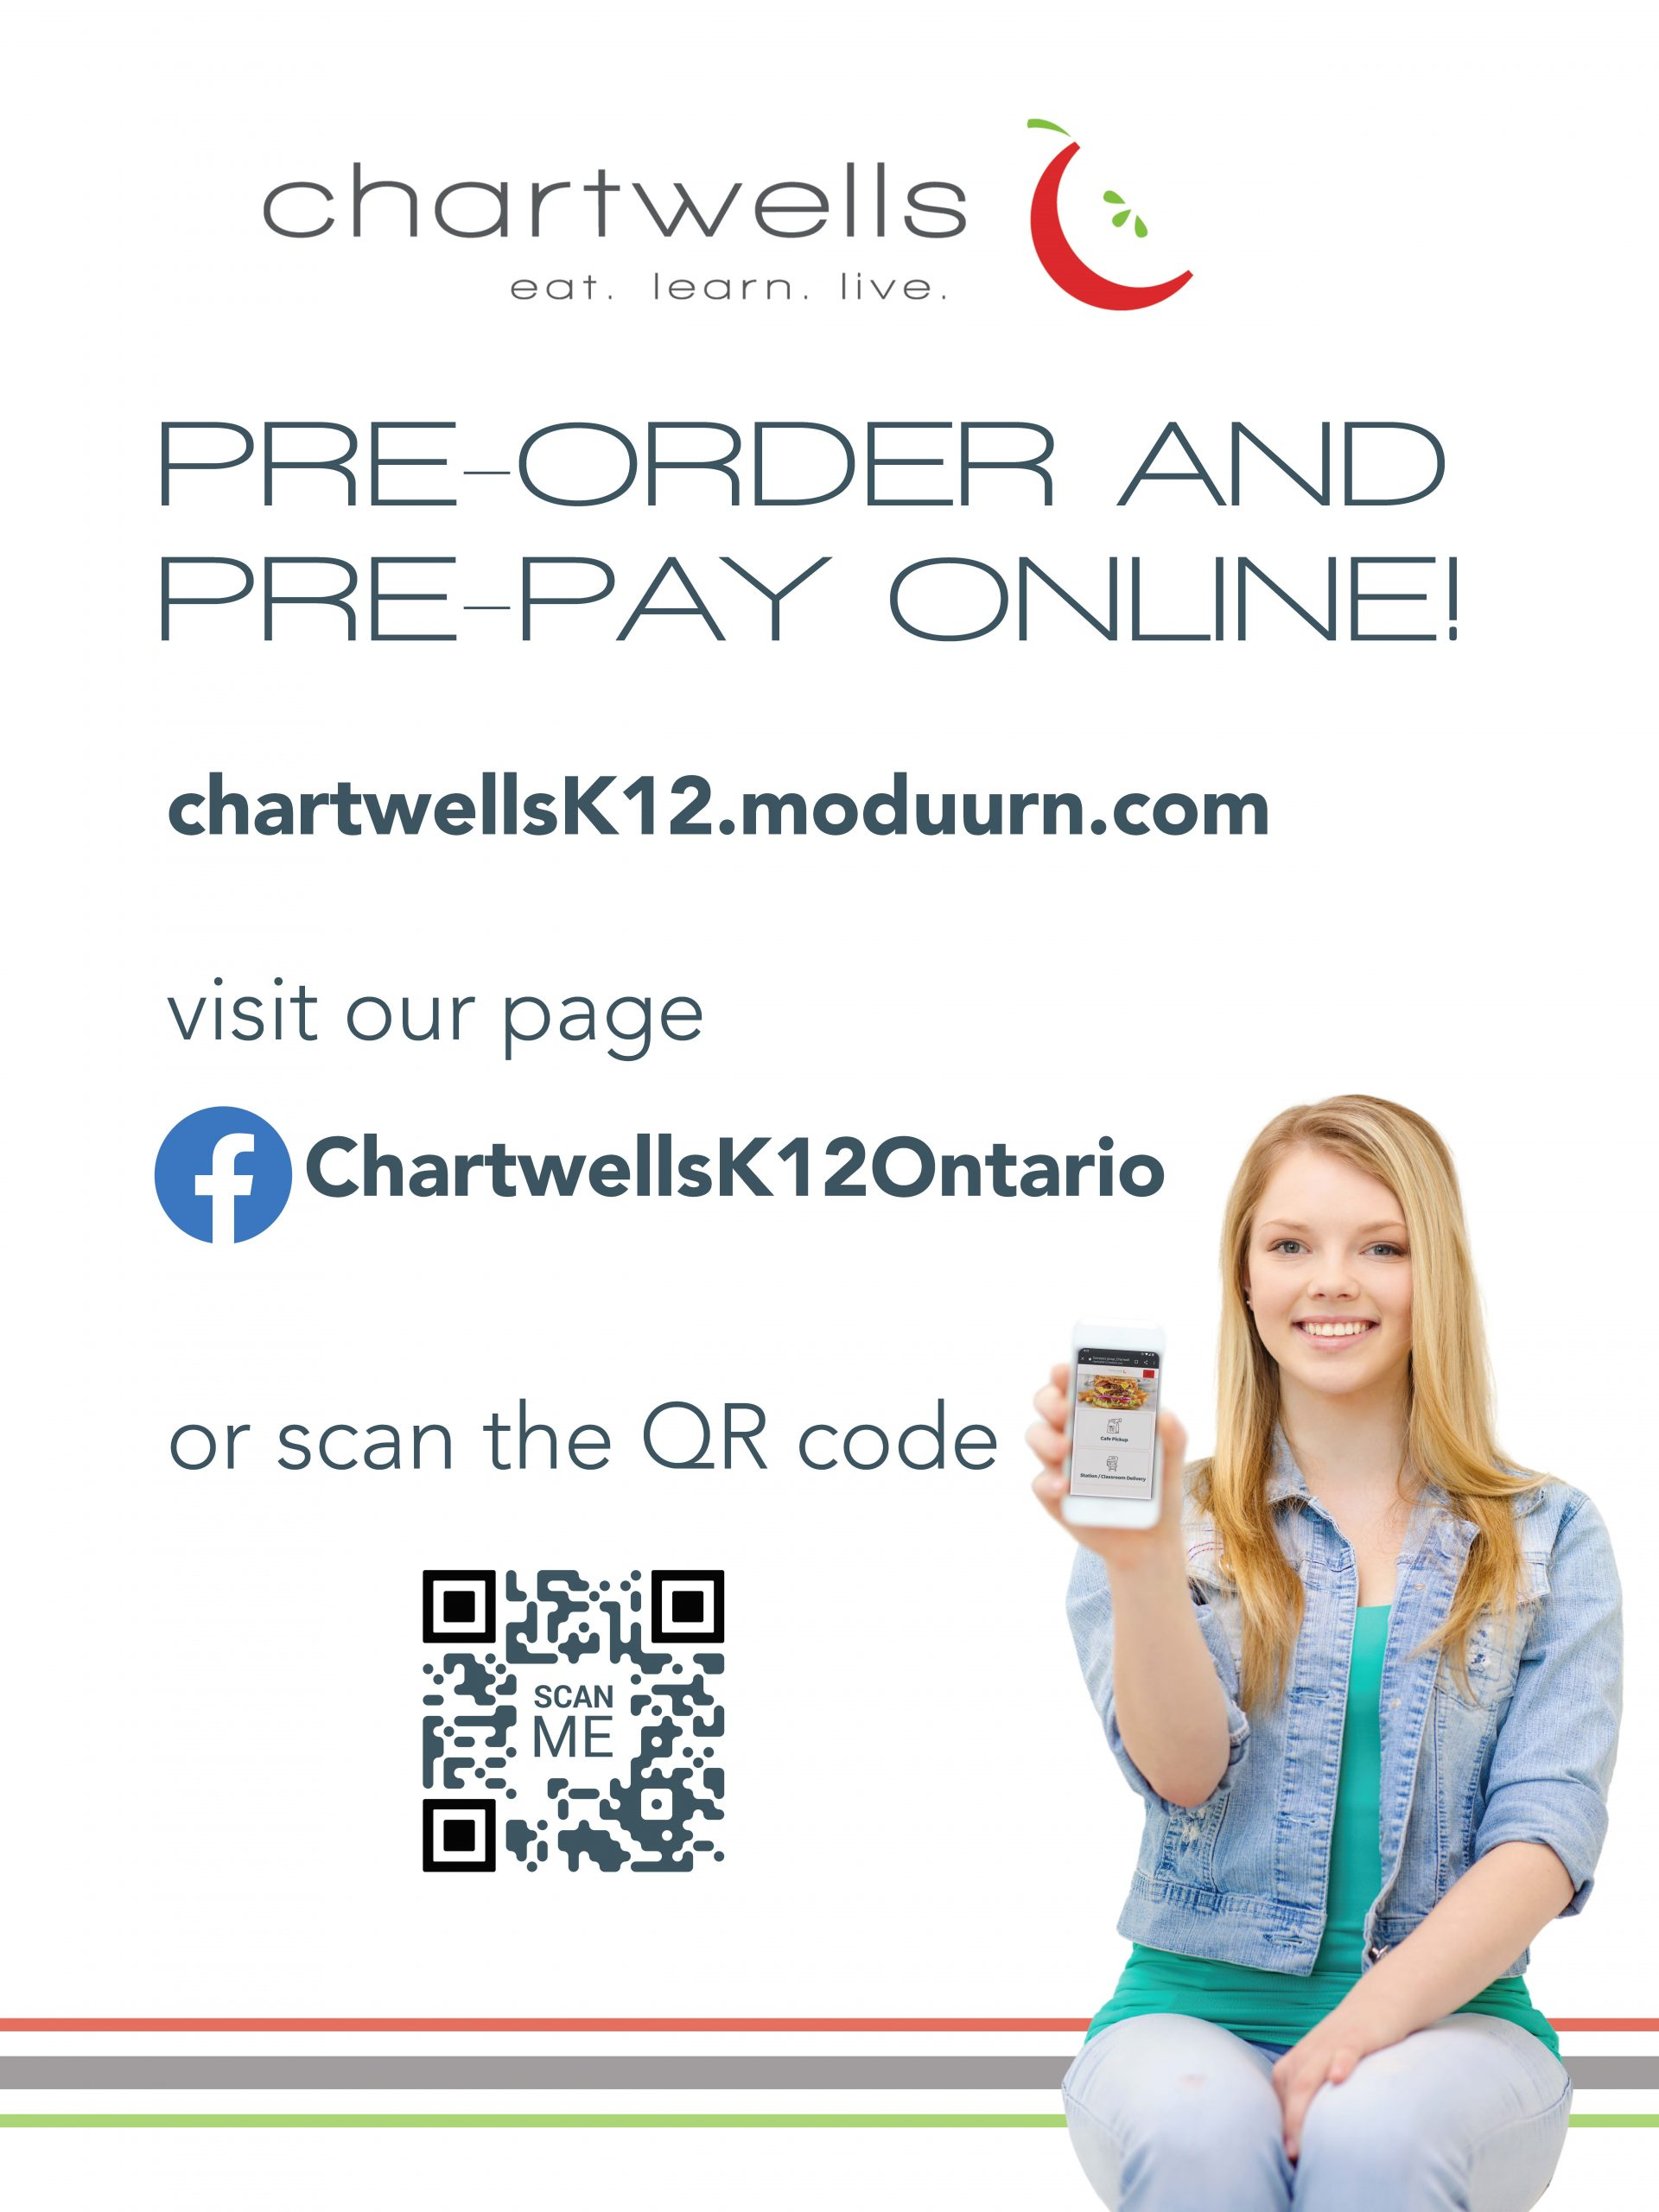 Pre-Order and Pre-Pay Online with Chartwells!